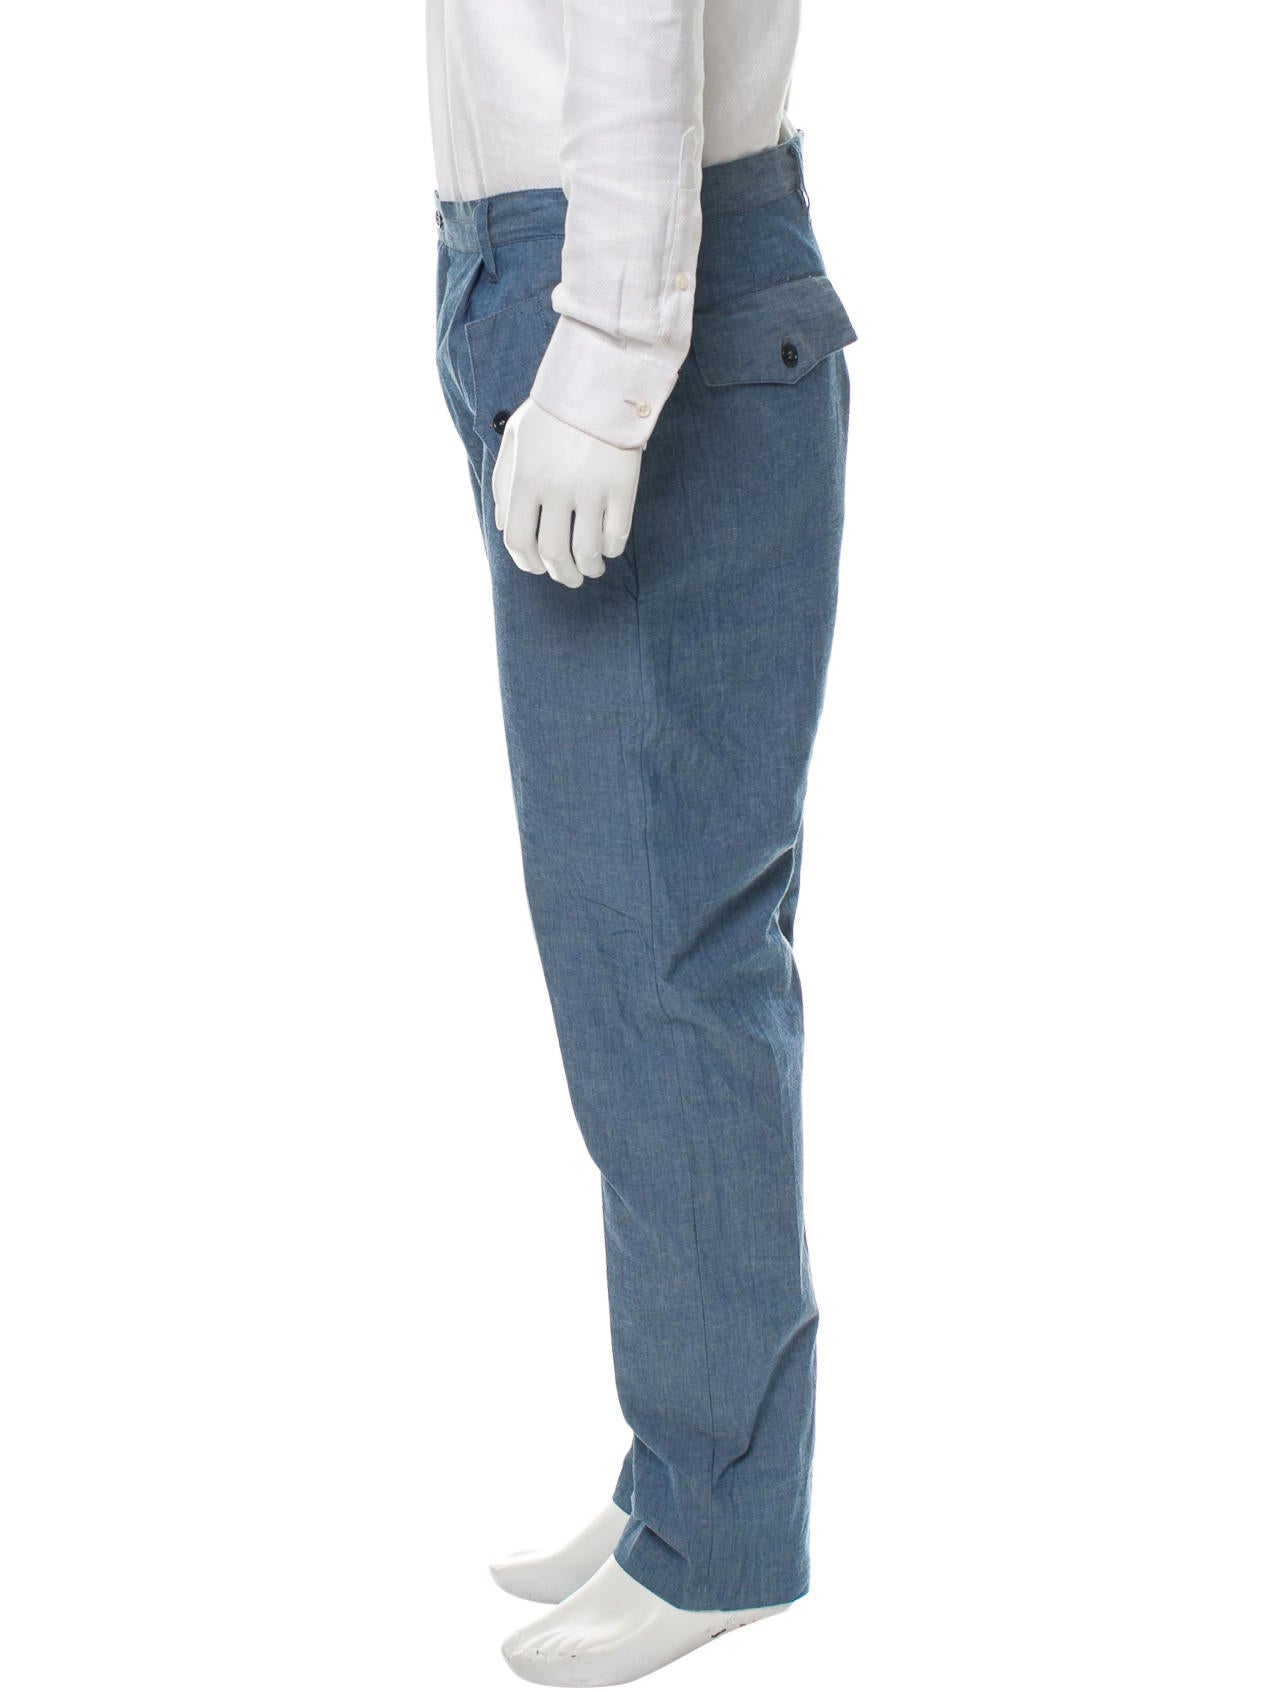 Camo chambray pants clothing wwcmo20013 the realreal for Chambray jeans